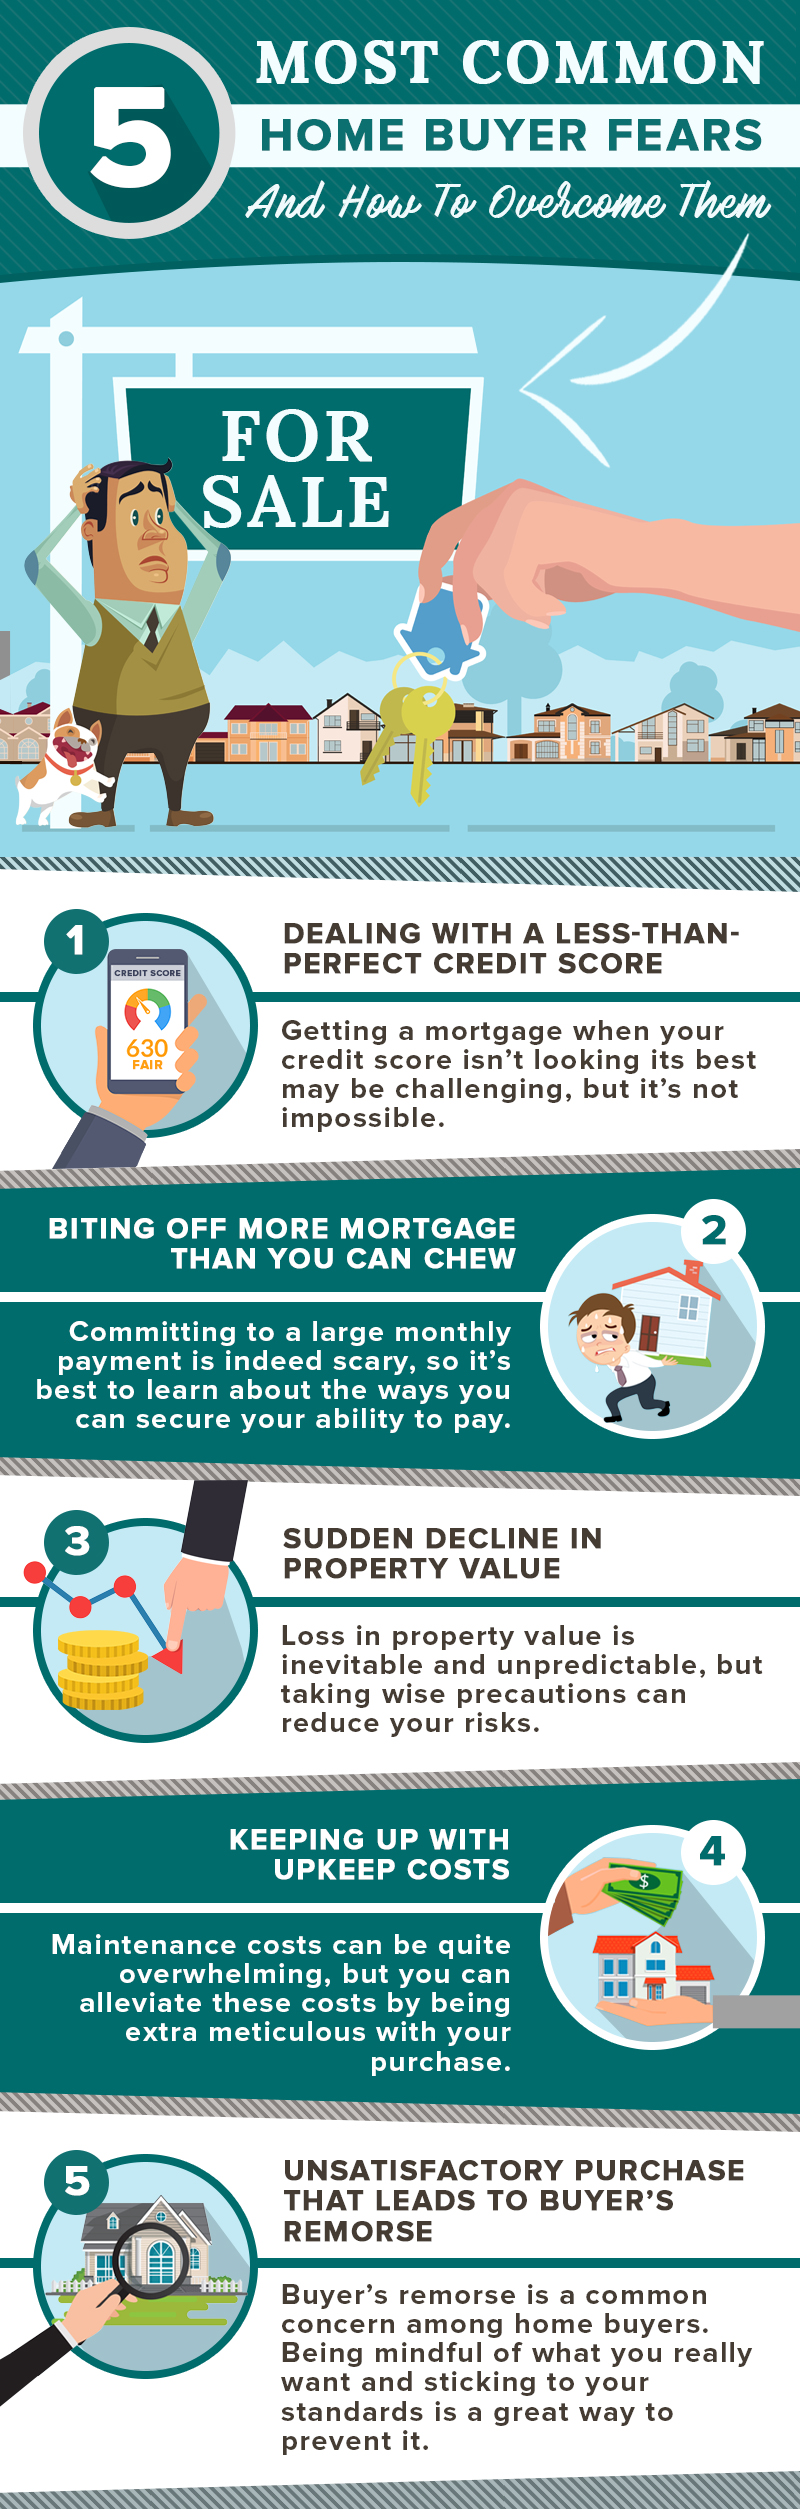 5 Most Common Home Buyer Fears And How To Overcome Them